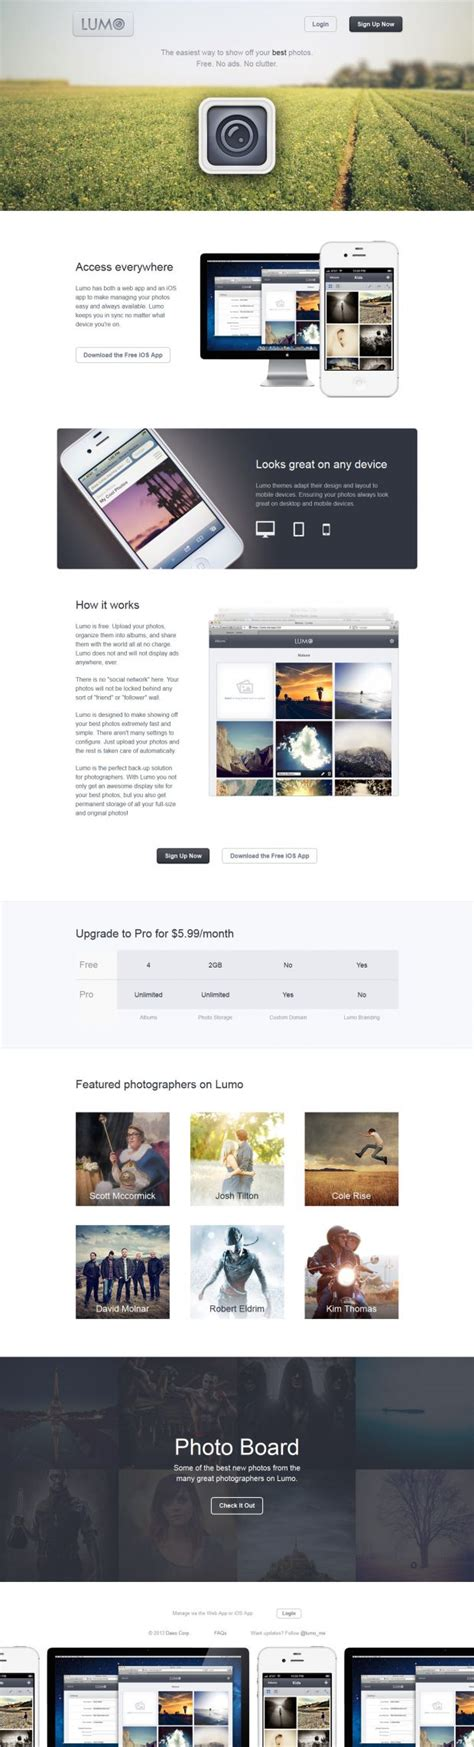 design inspiration websites 2016 lumo the easiest way to show off your best photos